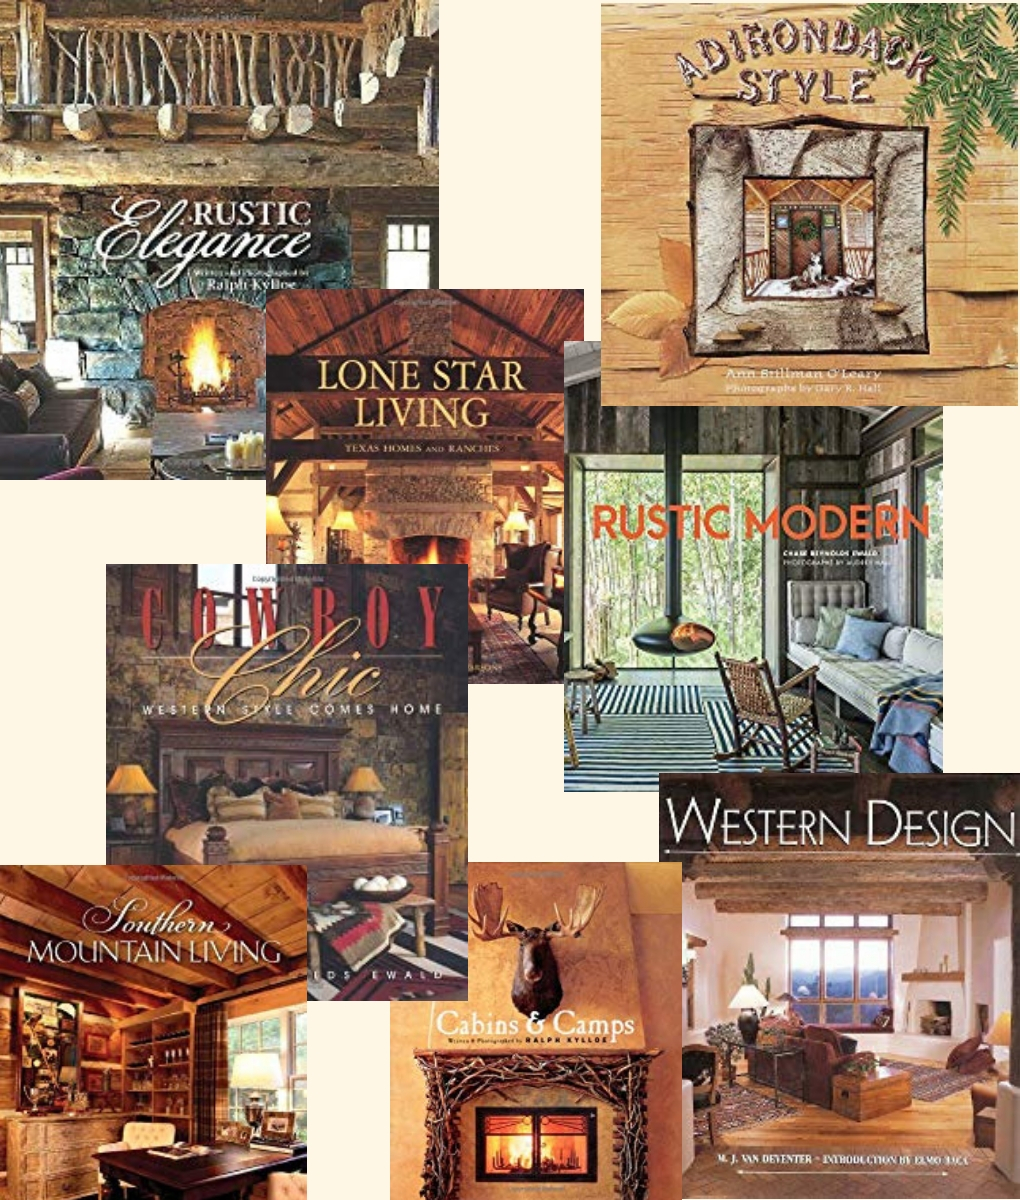 List of books about rustic furniture, decor, houses